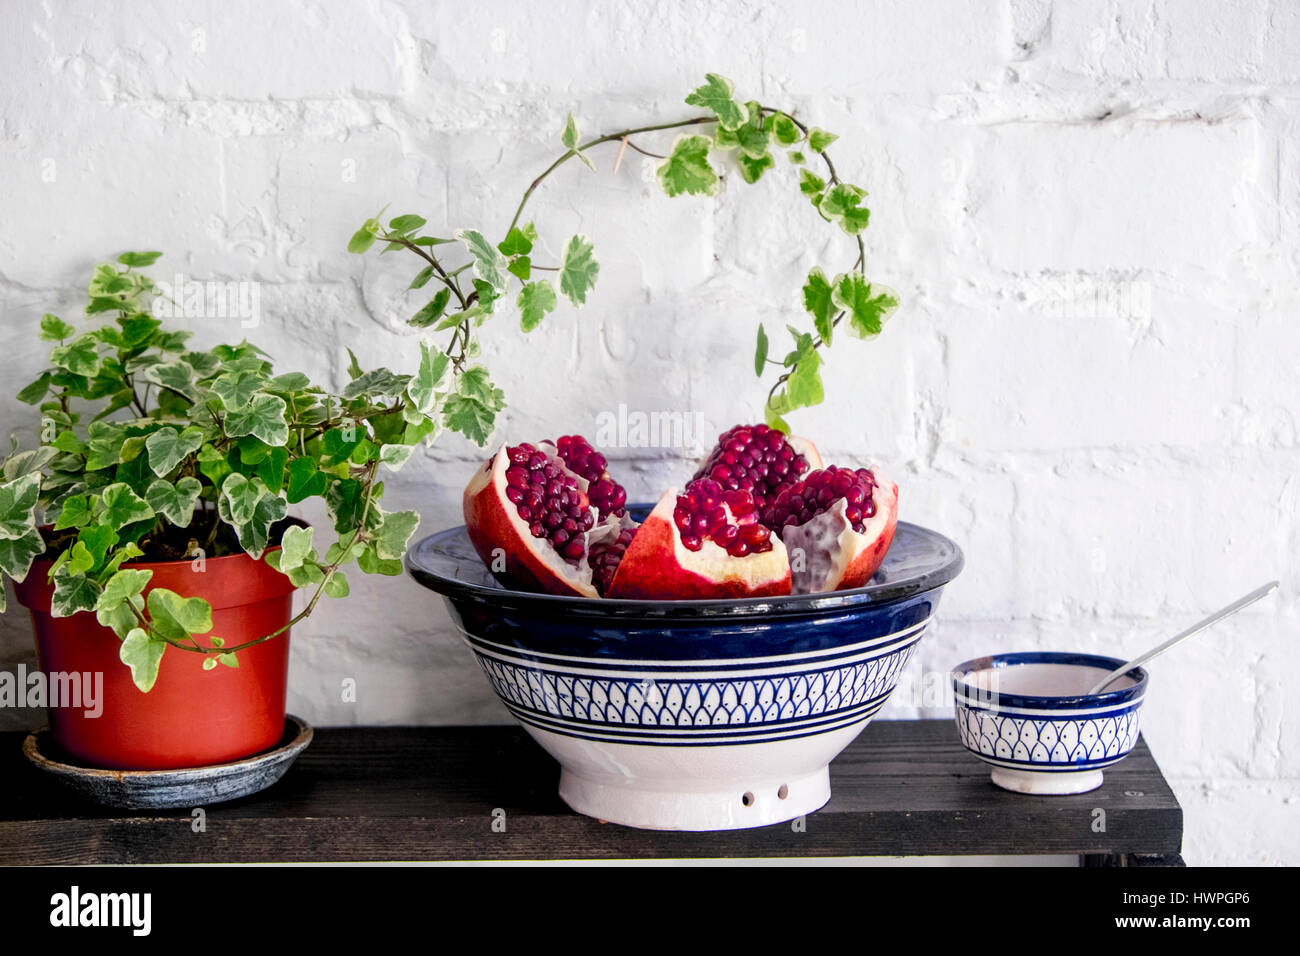 Close-up of pomegranate in plate on bowl by potted plant on table against brick wall - Stock Image